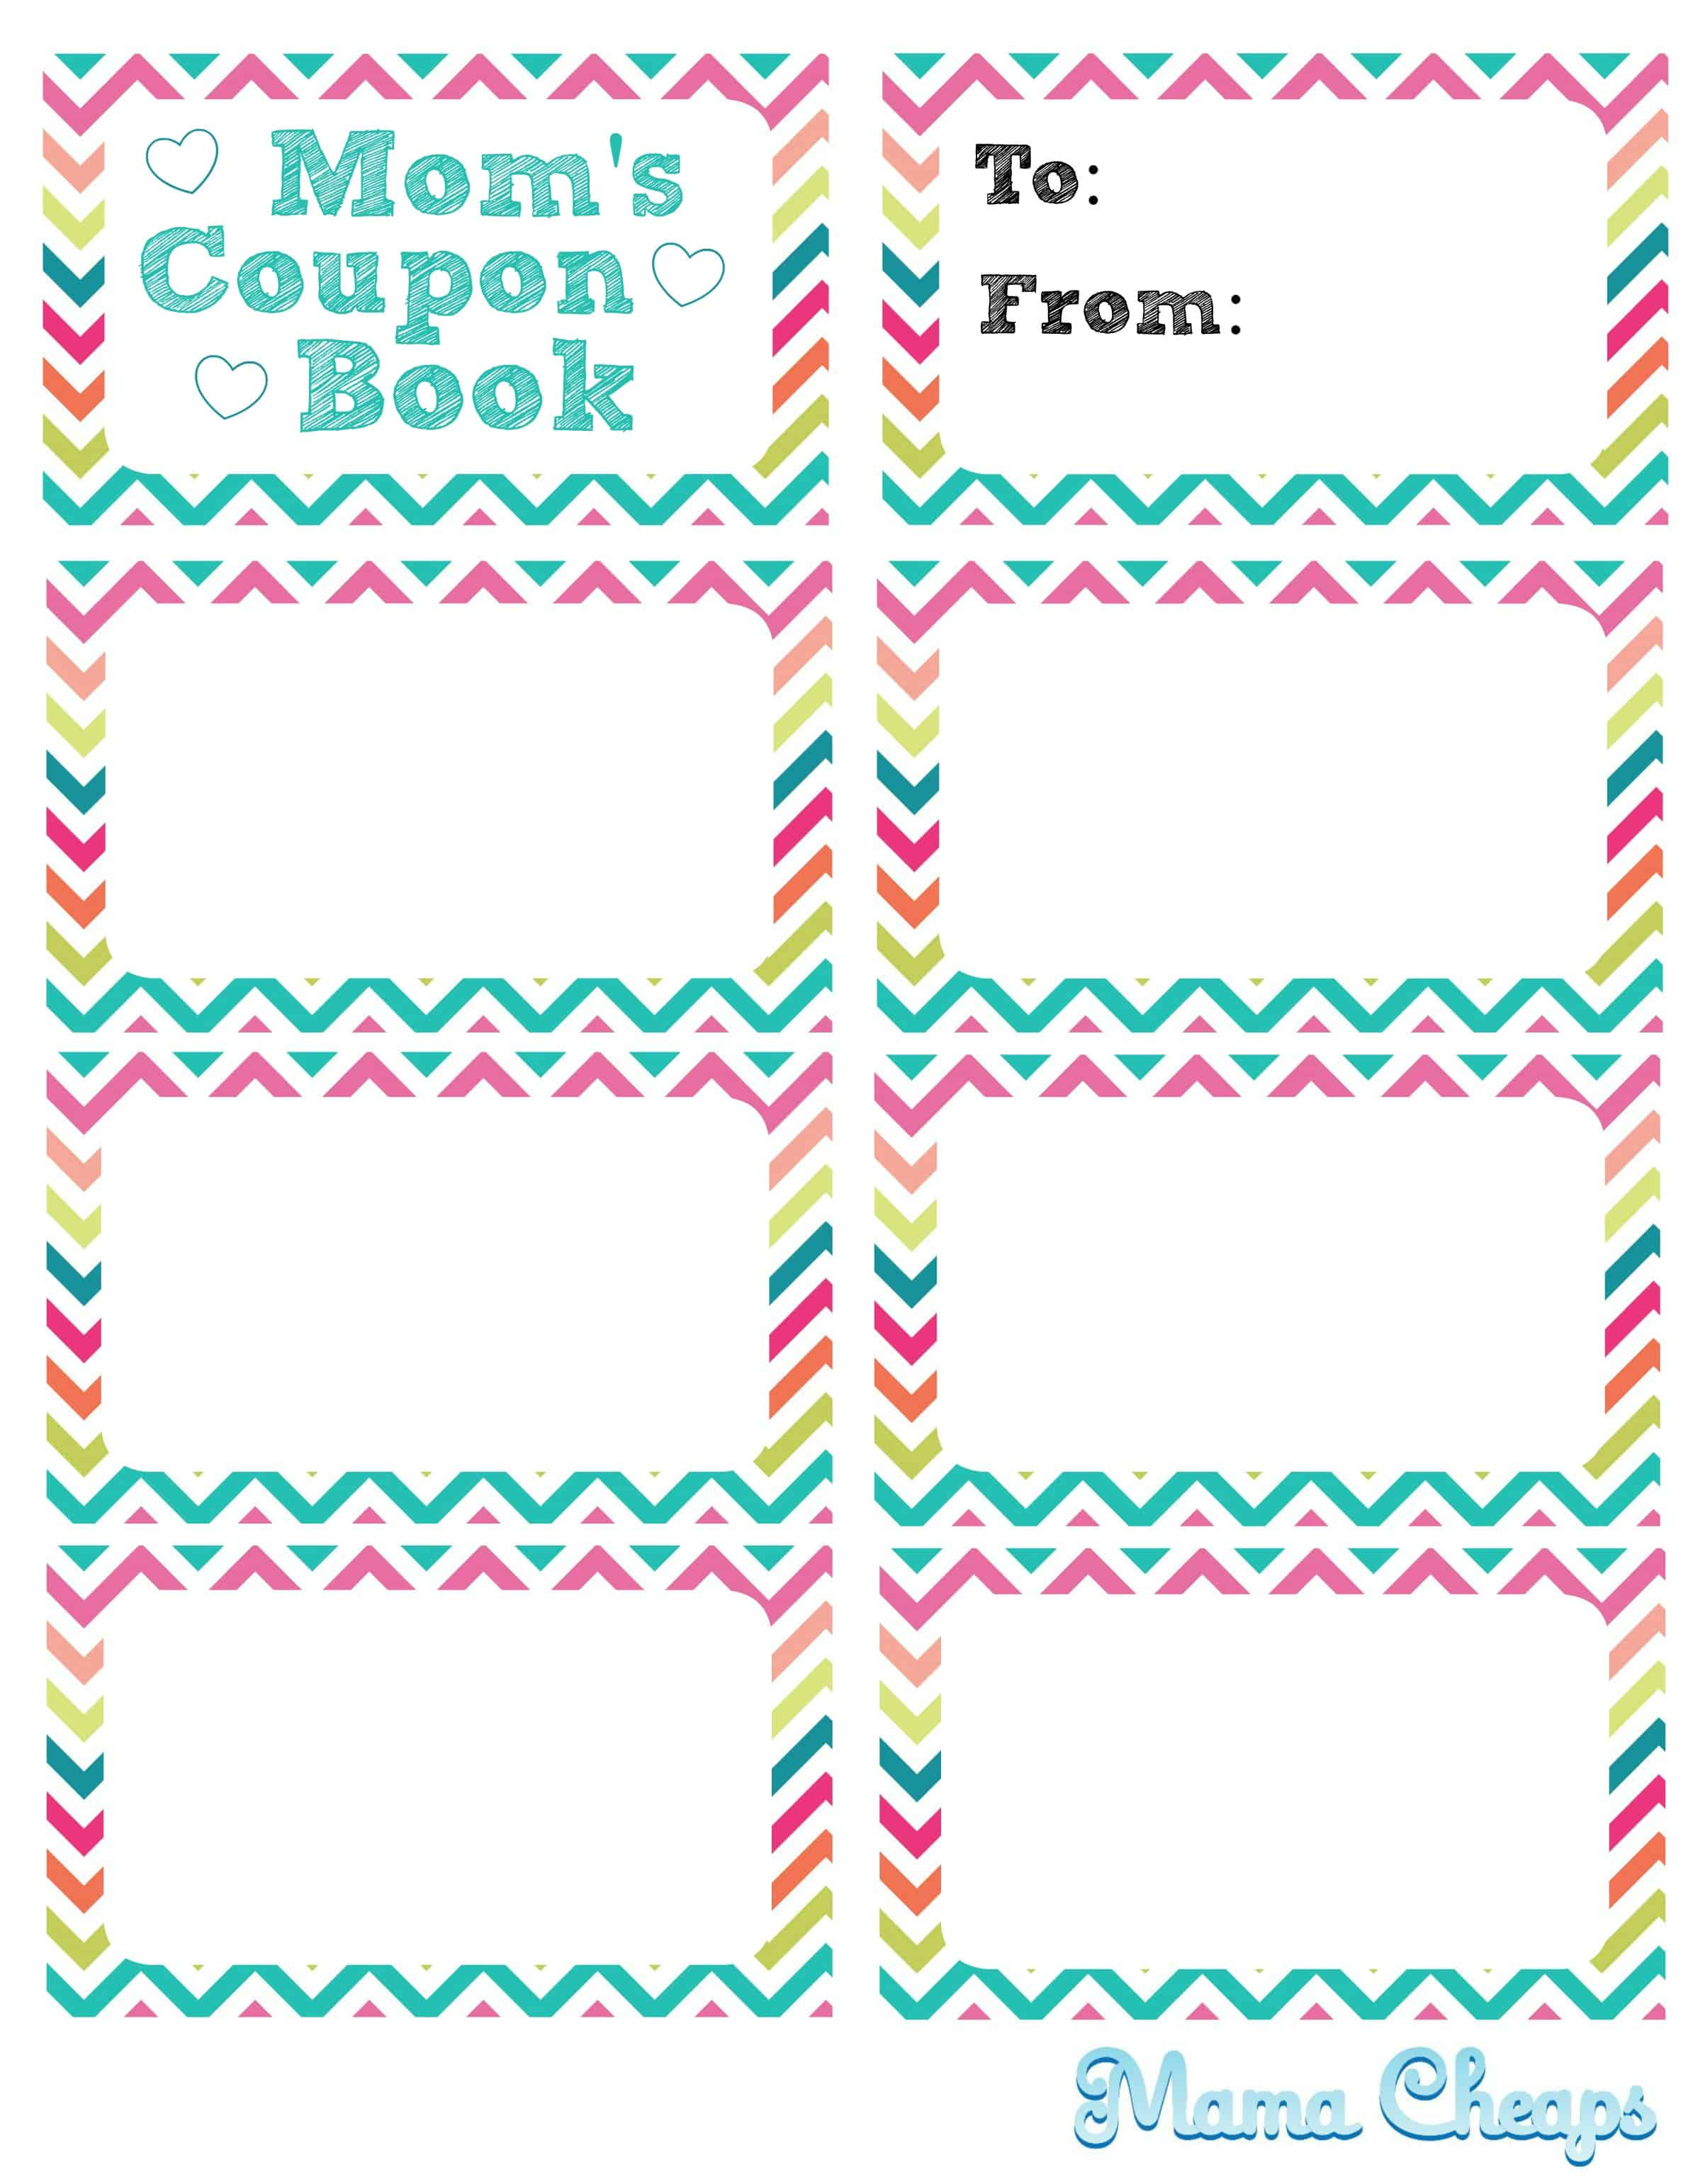 printable coupon book for mom mama cheapsmama cheaps this page for right